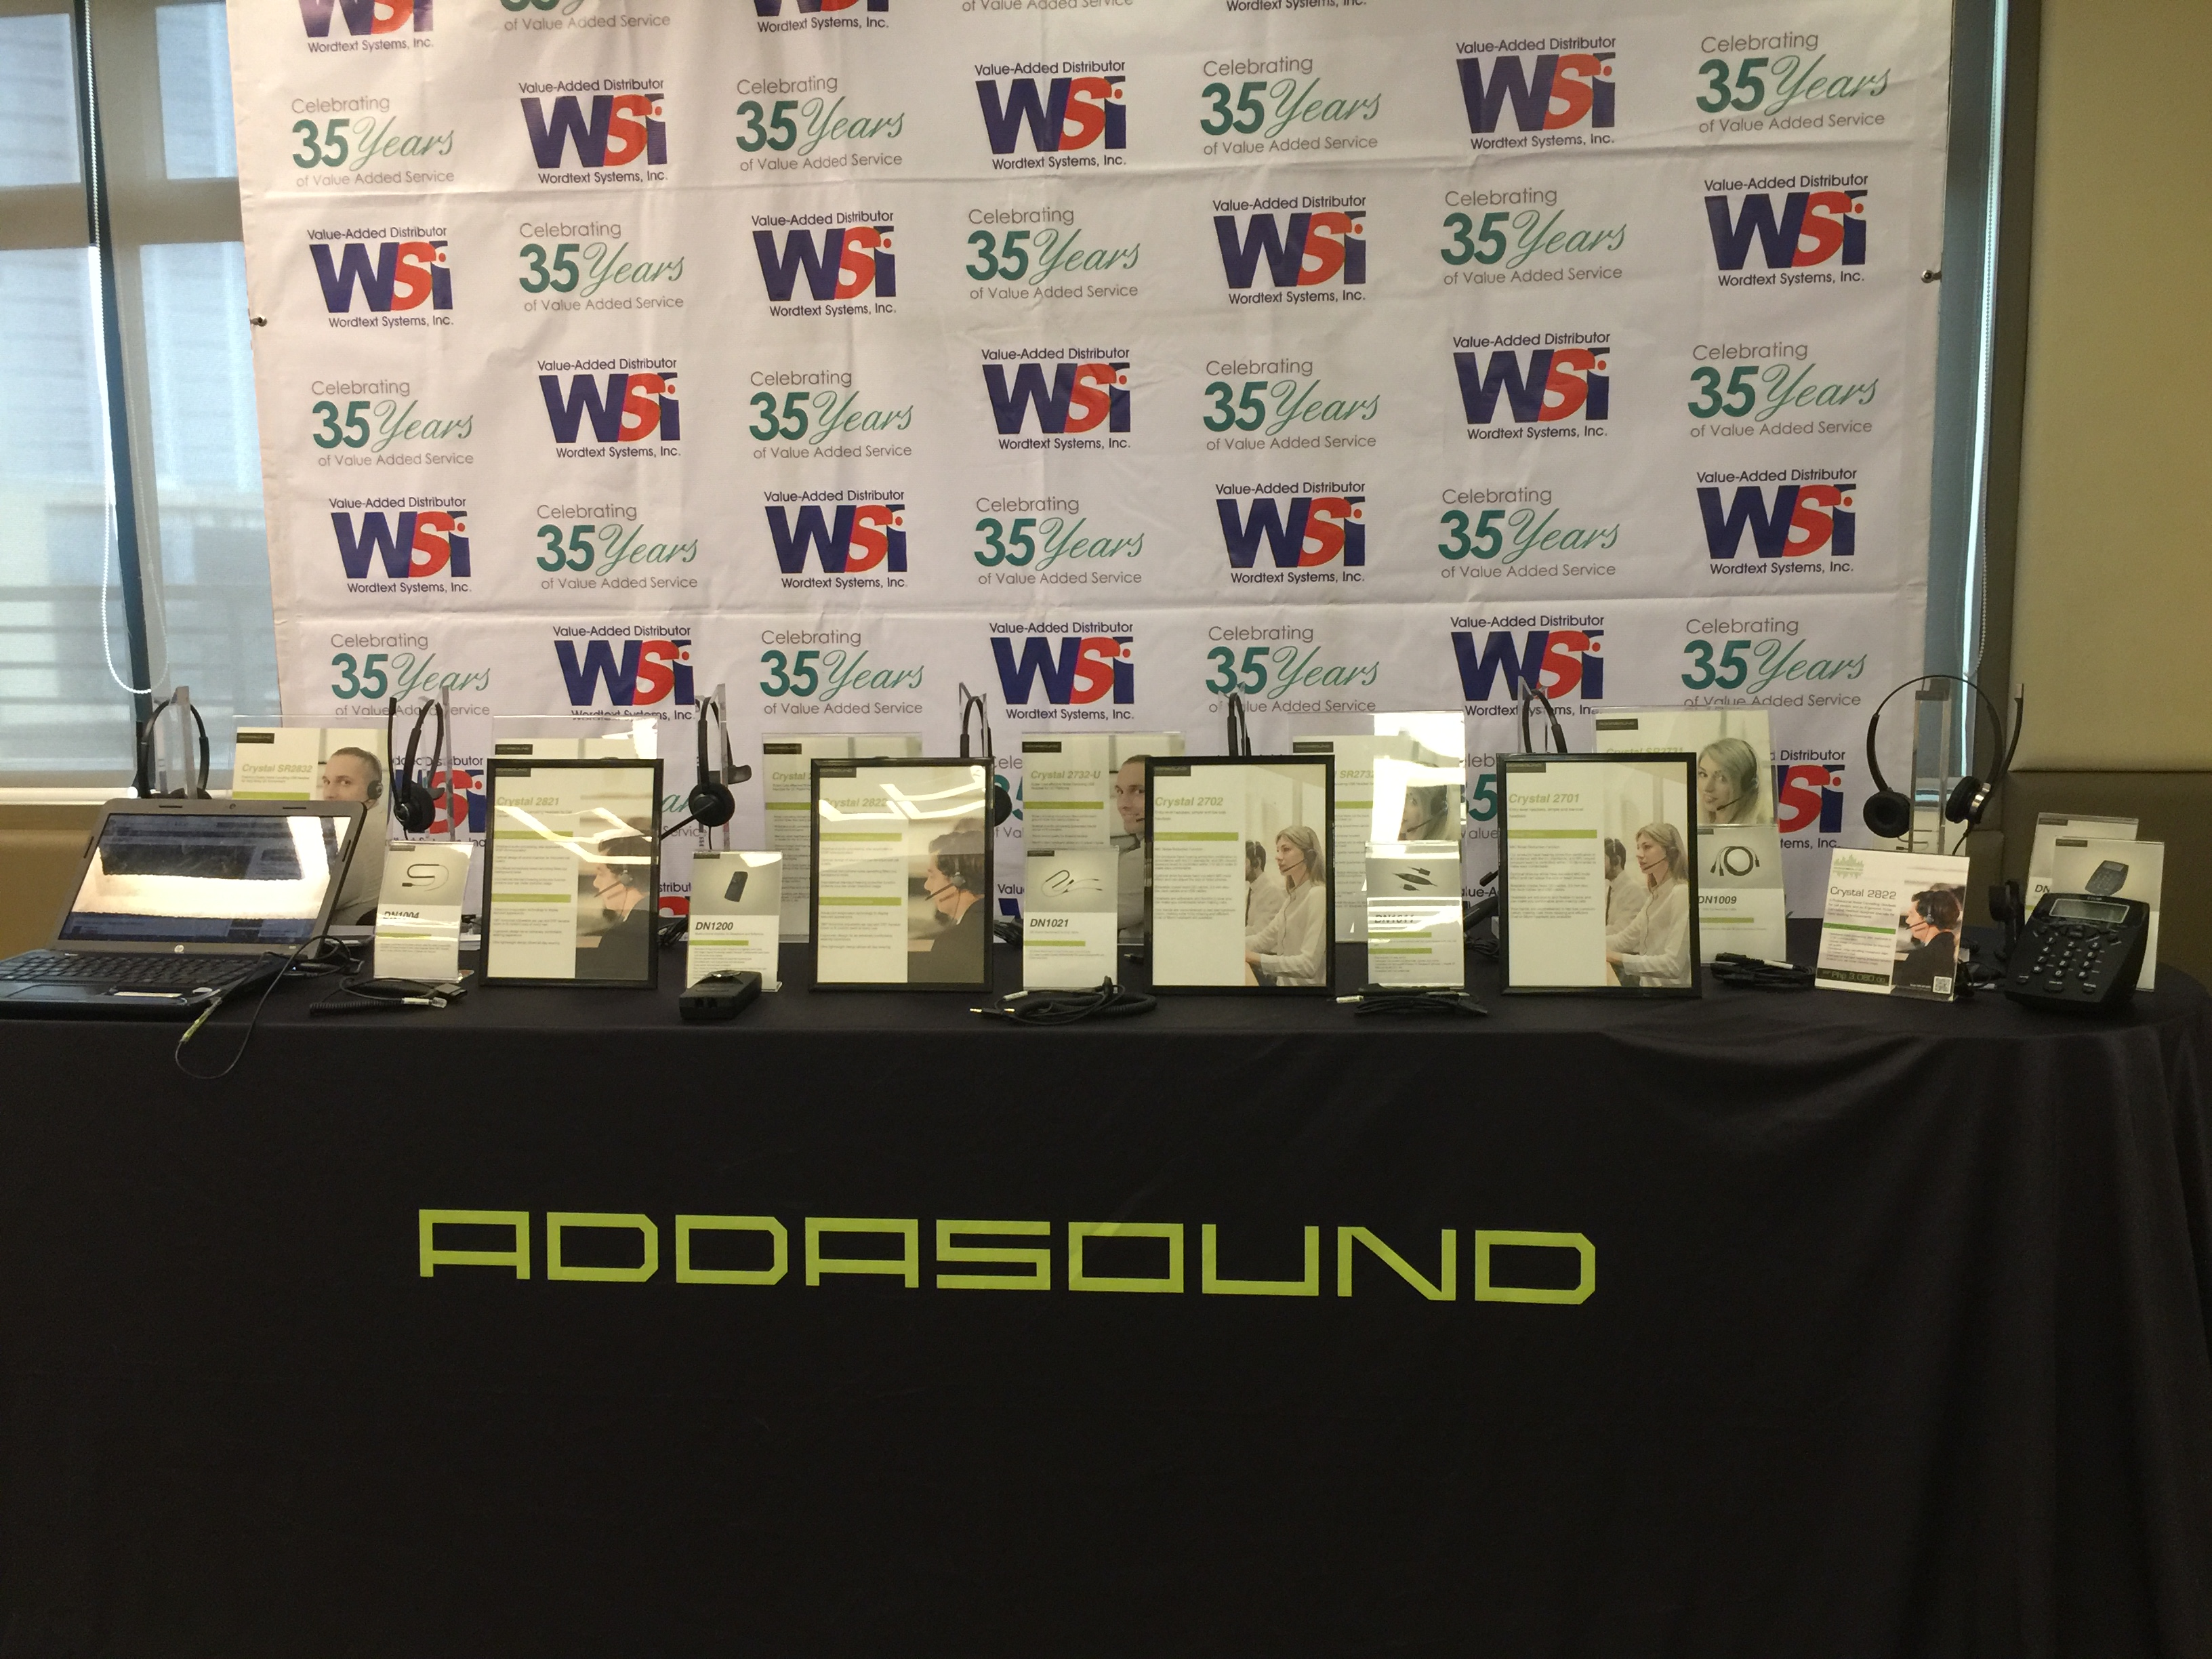 addasound, hardphones, headsets, softphones, wsi, wordtext systems inc